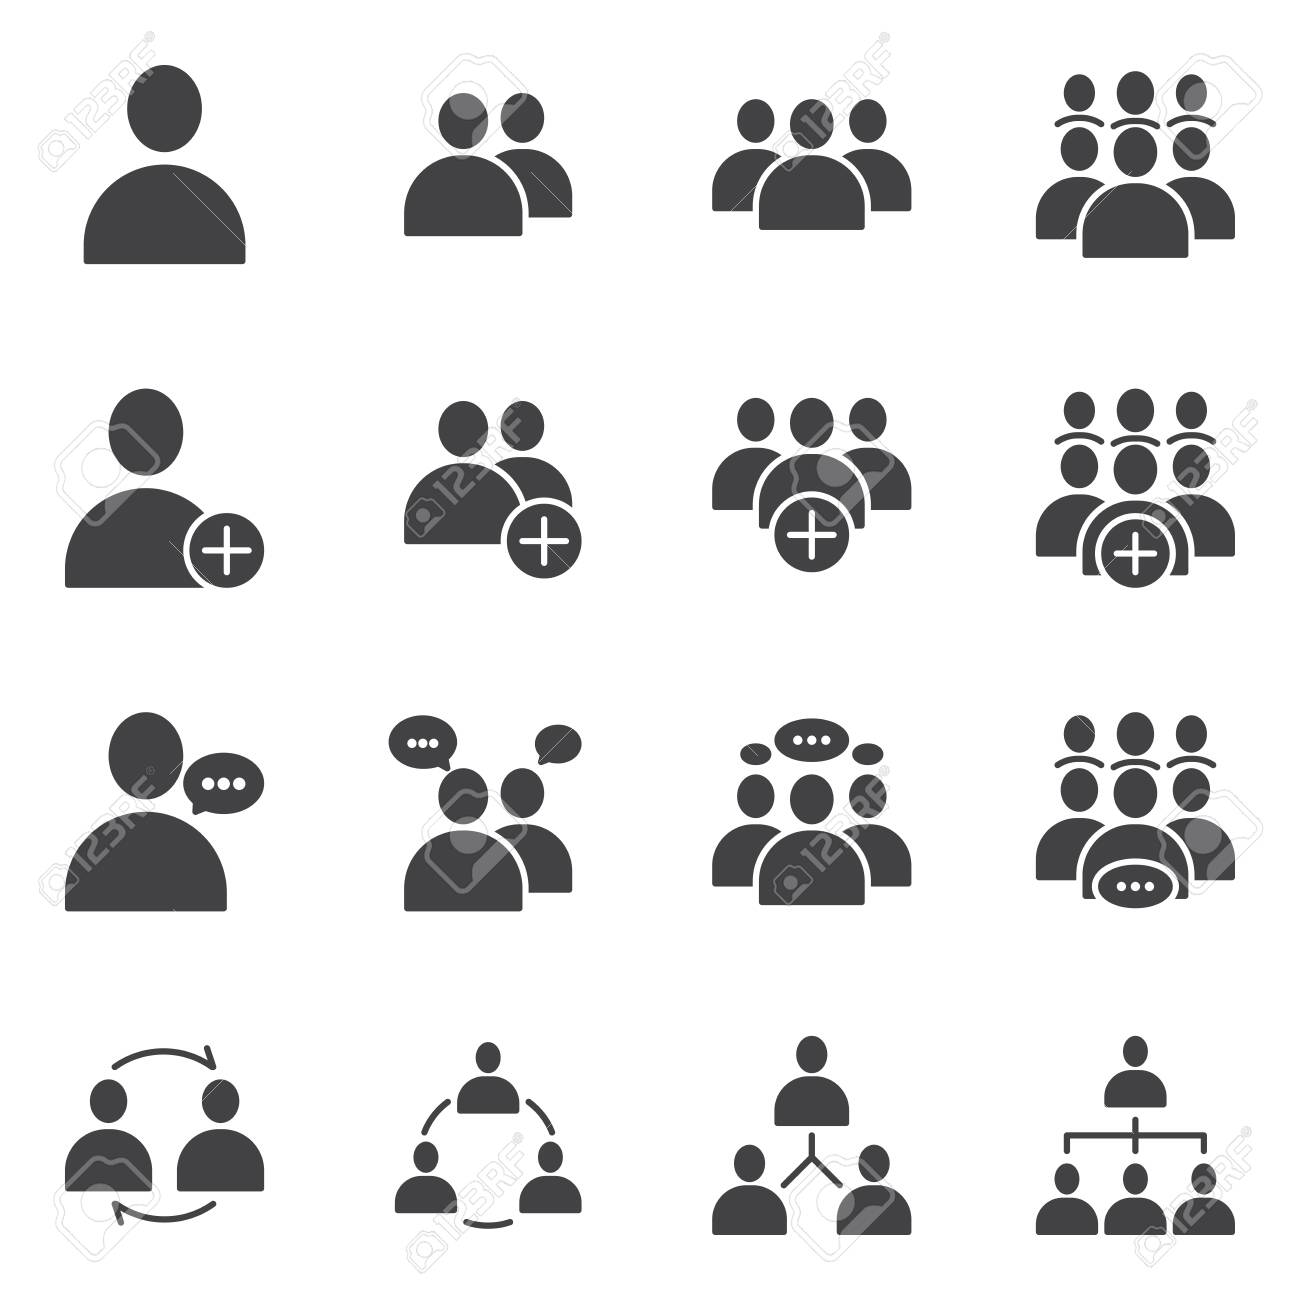 Simple Set of Business People Related Vector flat Glyph solid Icons. Contains such as Meeting, Business Communication, Teamwork, connection, speaking and more - 144945378